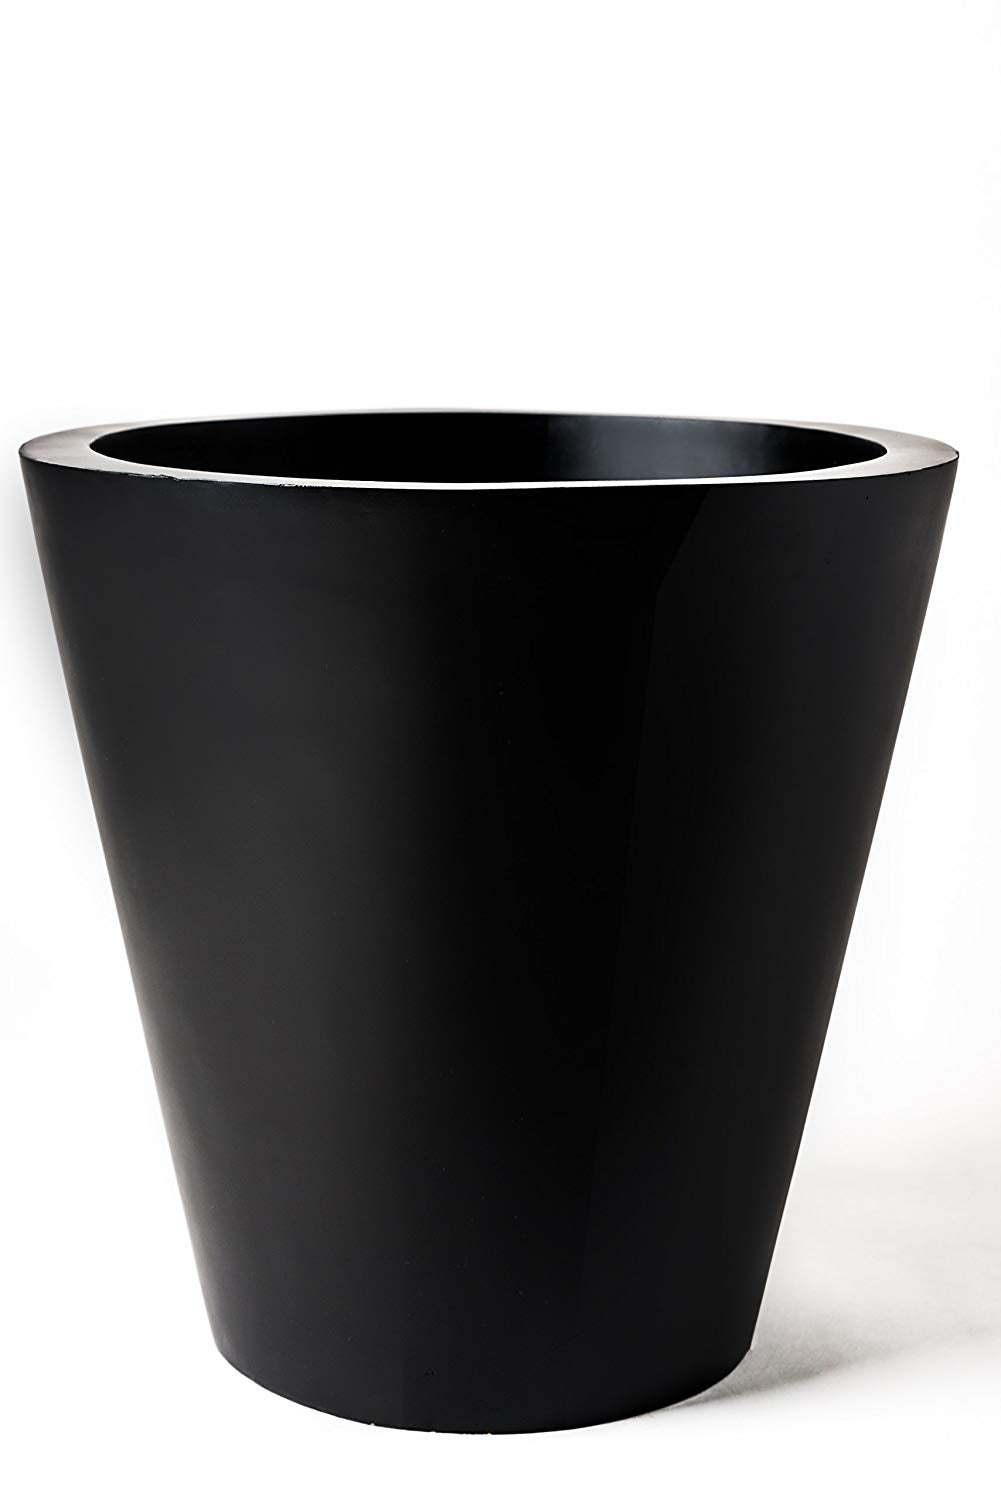 "Large Outdoor Planter; Round Plant Pot, Indoor, Patio or Garden, Flower Pot, Handmade Fiberglass, 16"" Tall, (Tubinae Black 16""x16""x16"" and 7.5lbs)"